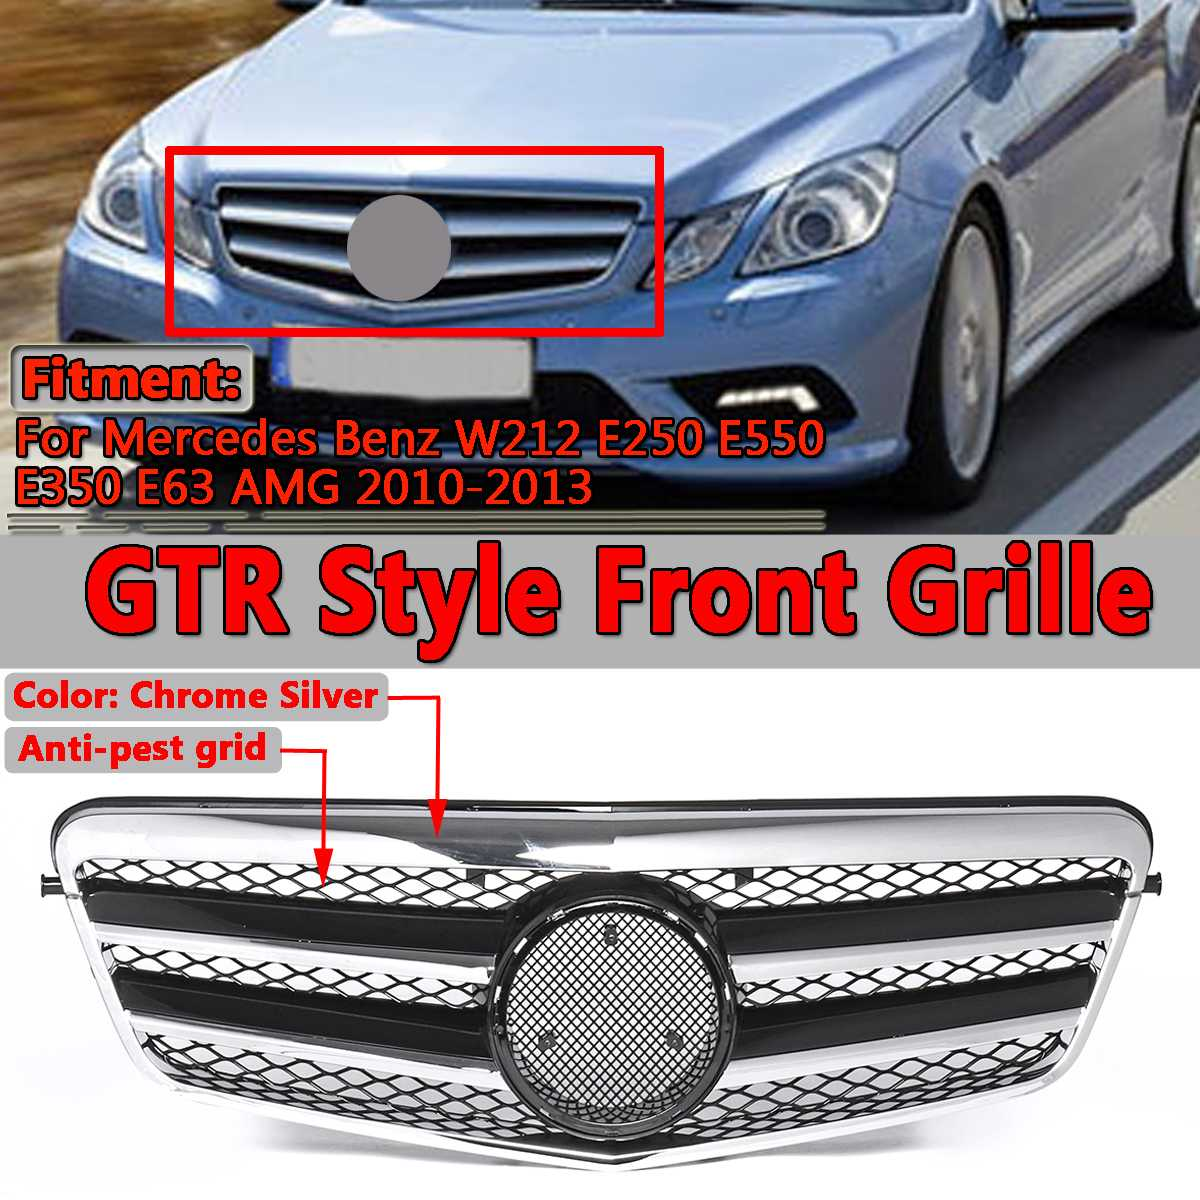 1x New For AMG Style Car Front Bumper Grill Grille For Mercedes For Benz W212 E250 E550 E350 E63 For AMG 2010-2013 Racing Grills1x New For AMG Style Car Front Bumper Grill Grille For Mercedes For Benz W212 E250 E550 E350 E63 For AMG 2010-2013 Racing Grills